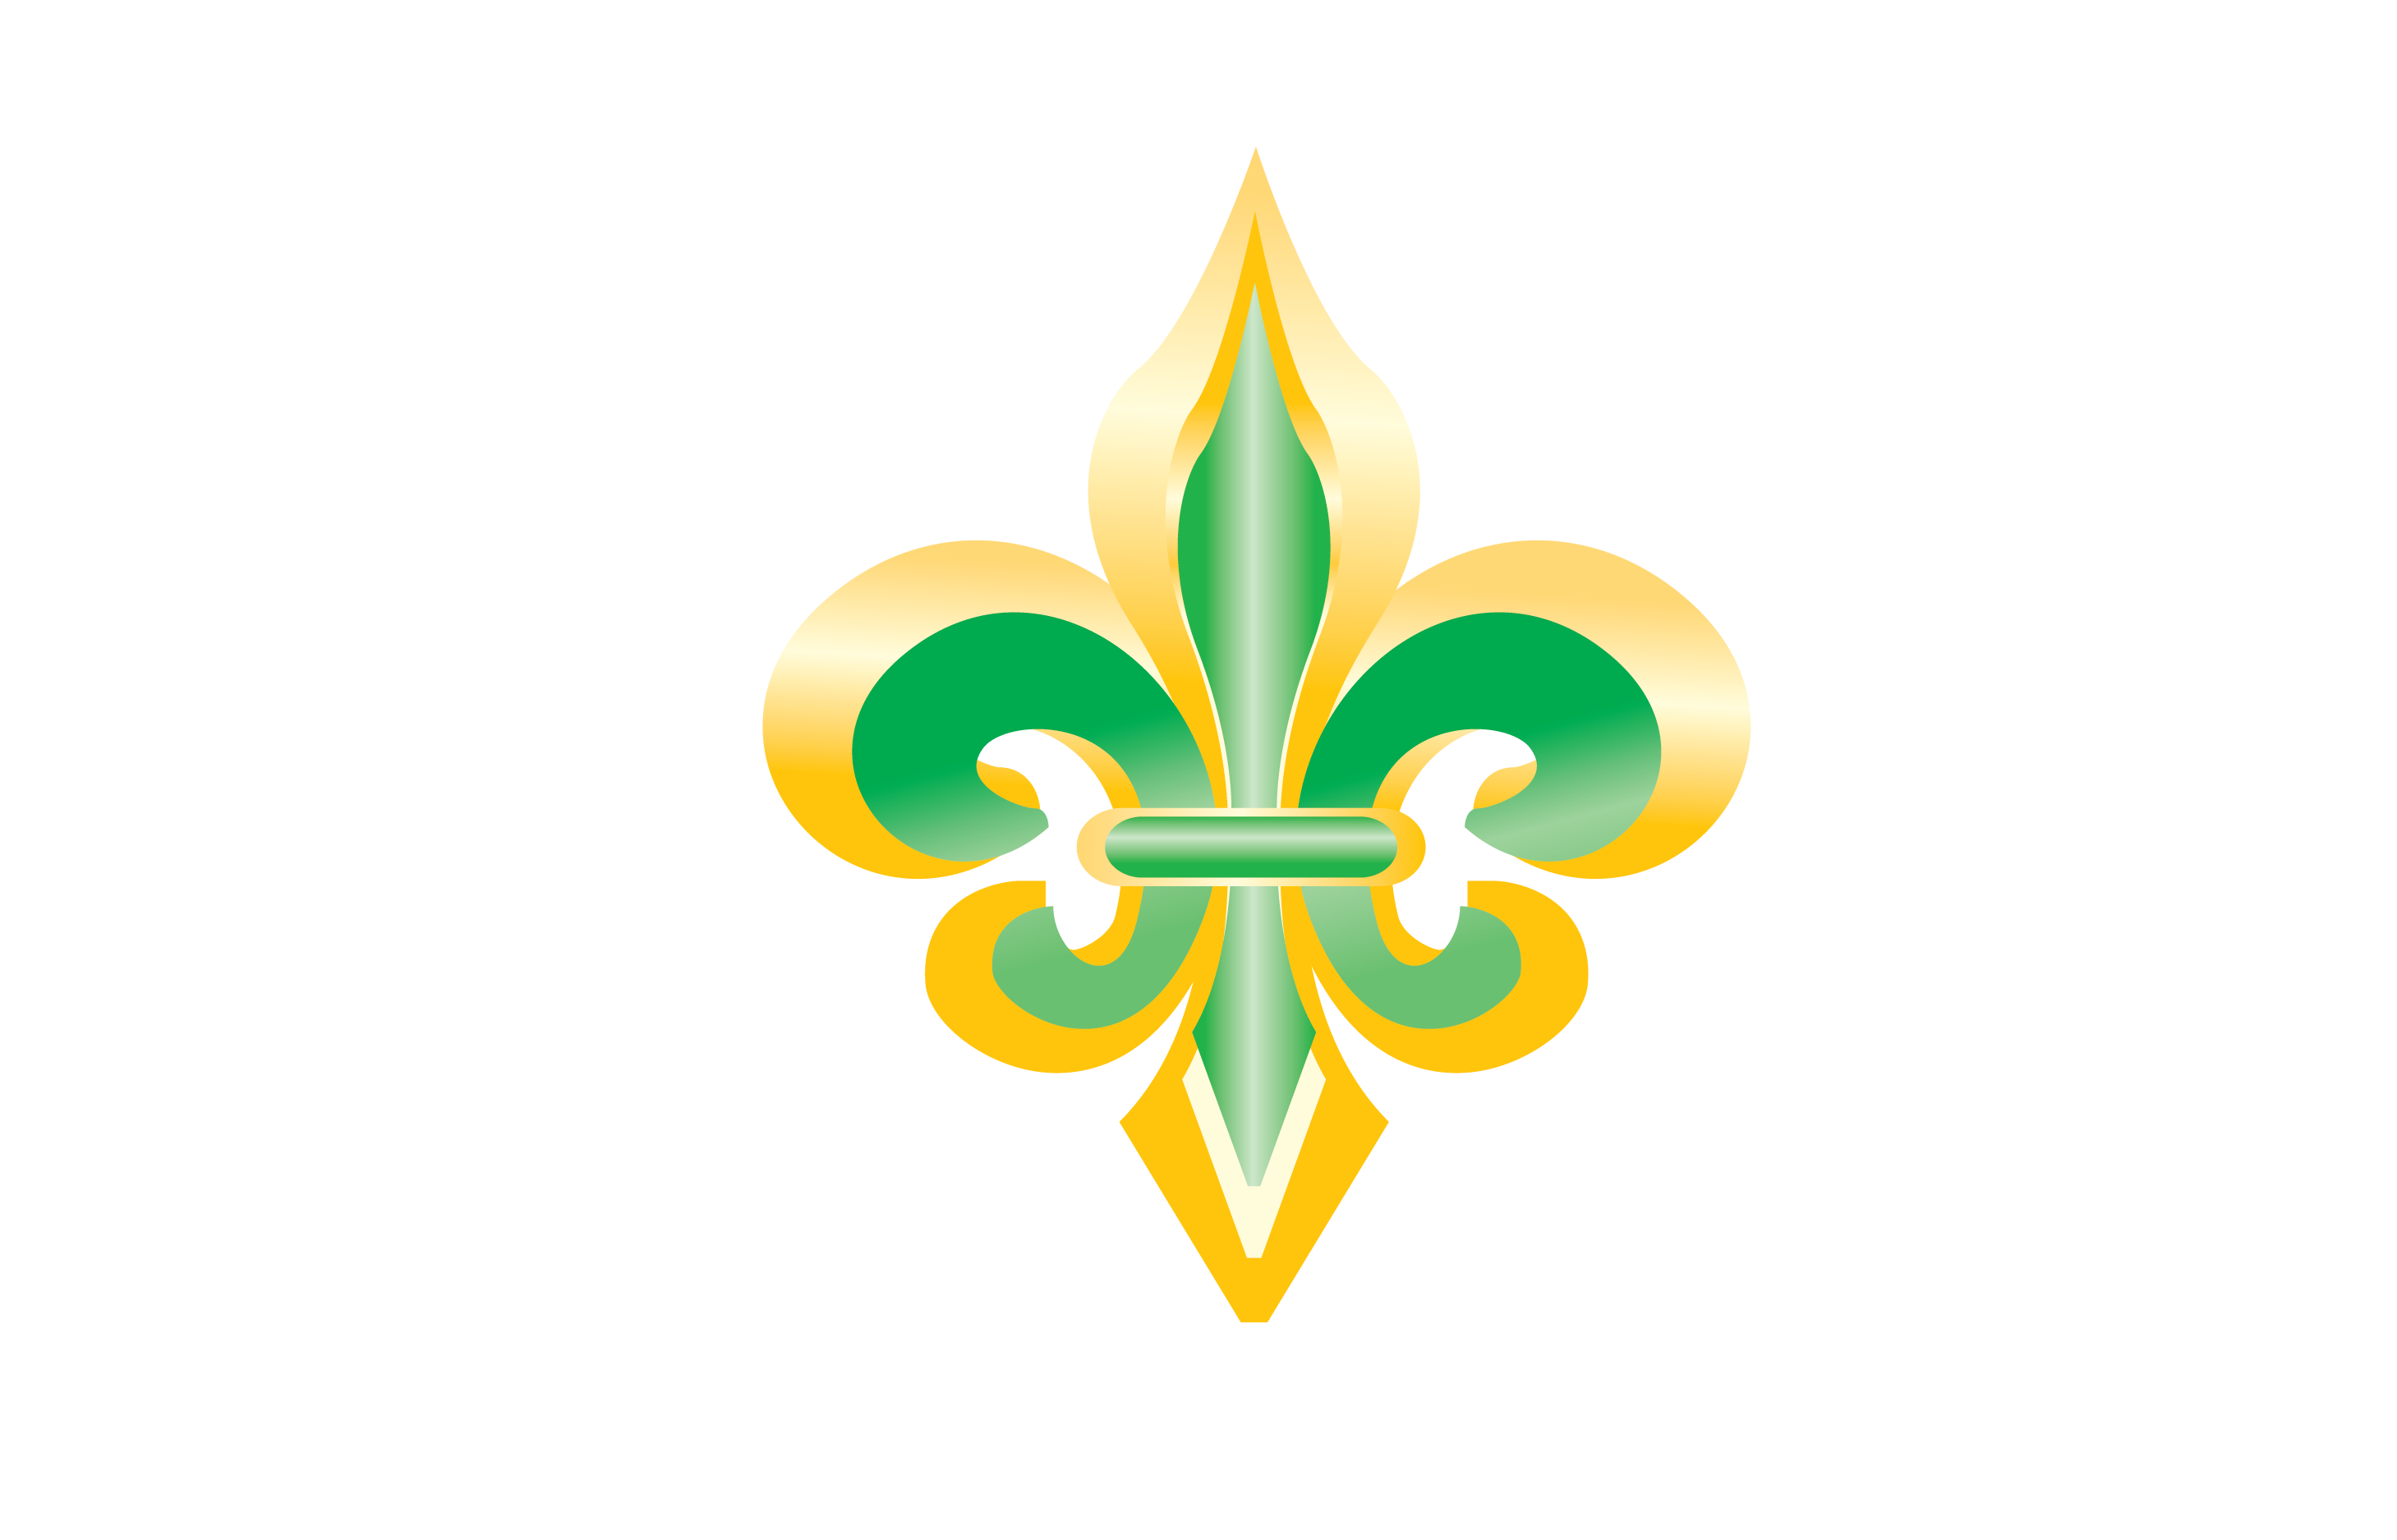 Gold and Green Fleur de Lis Clip Art.